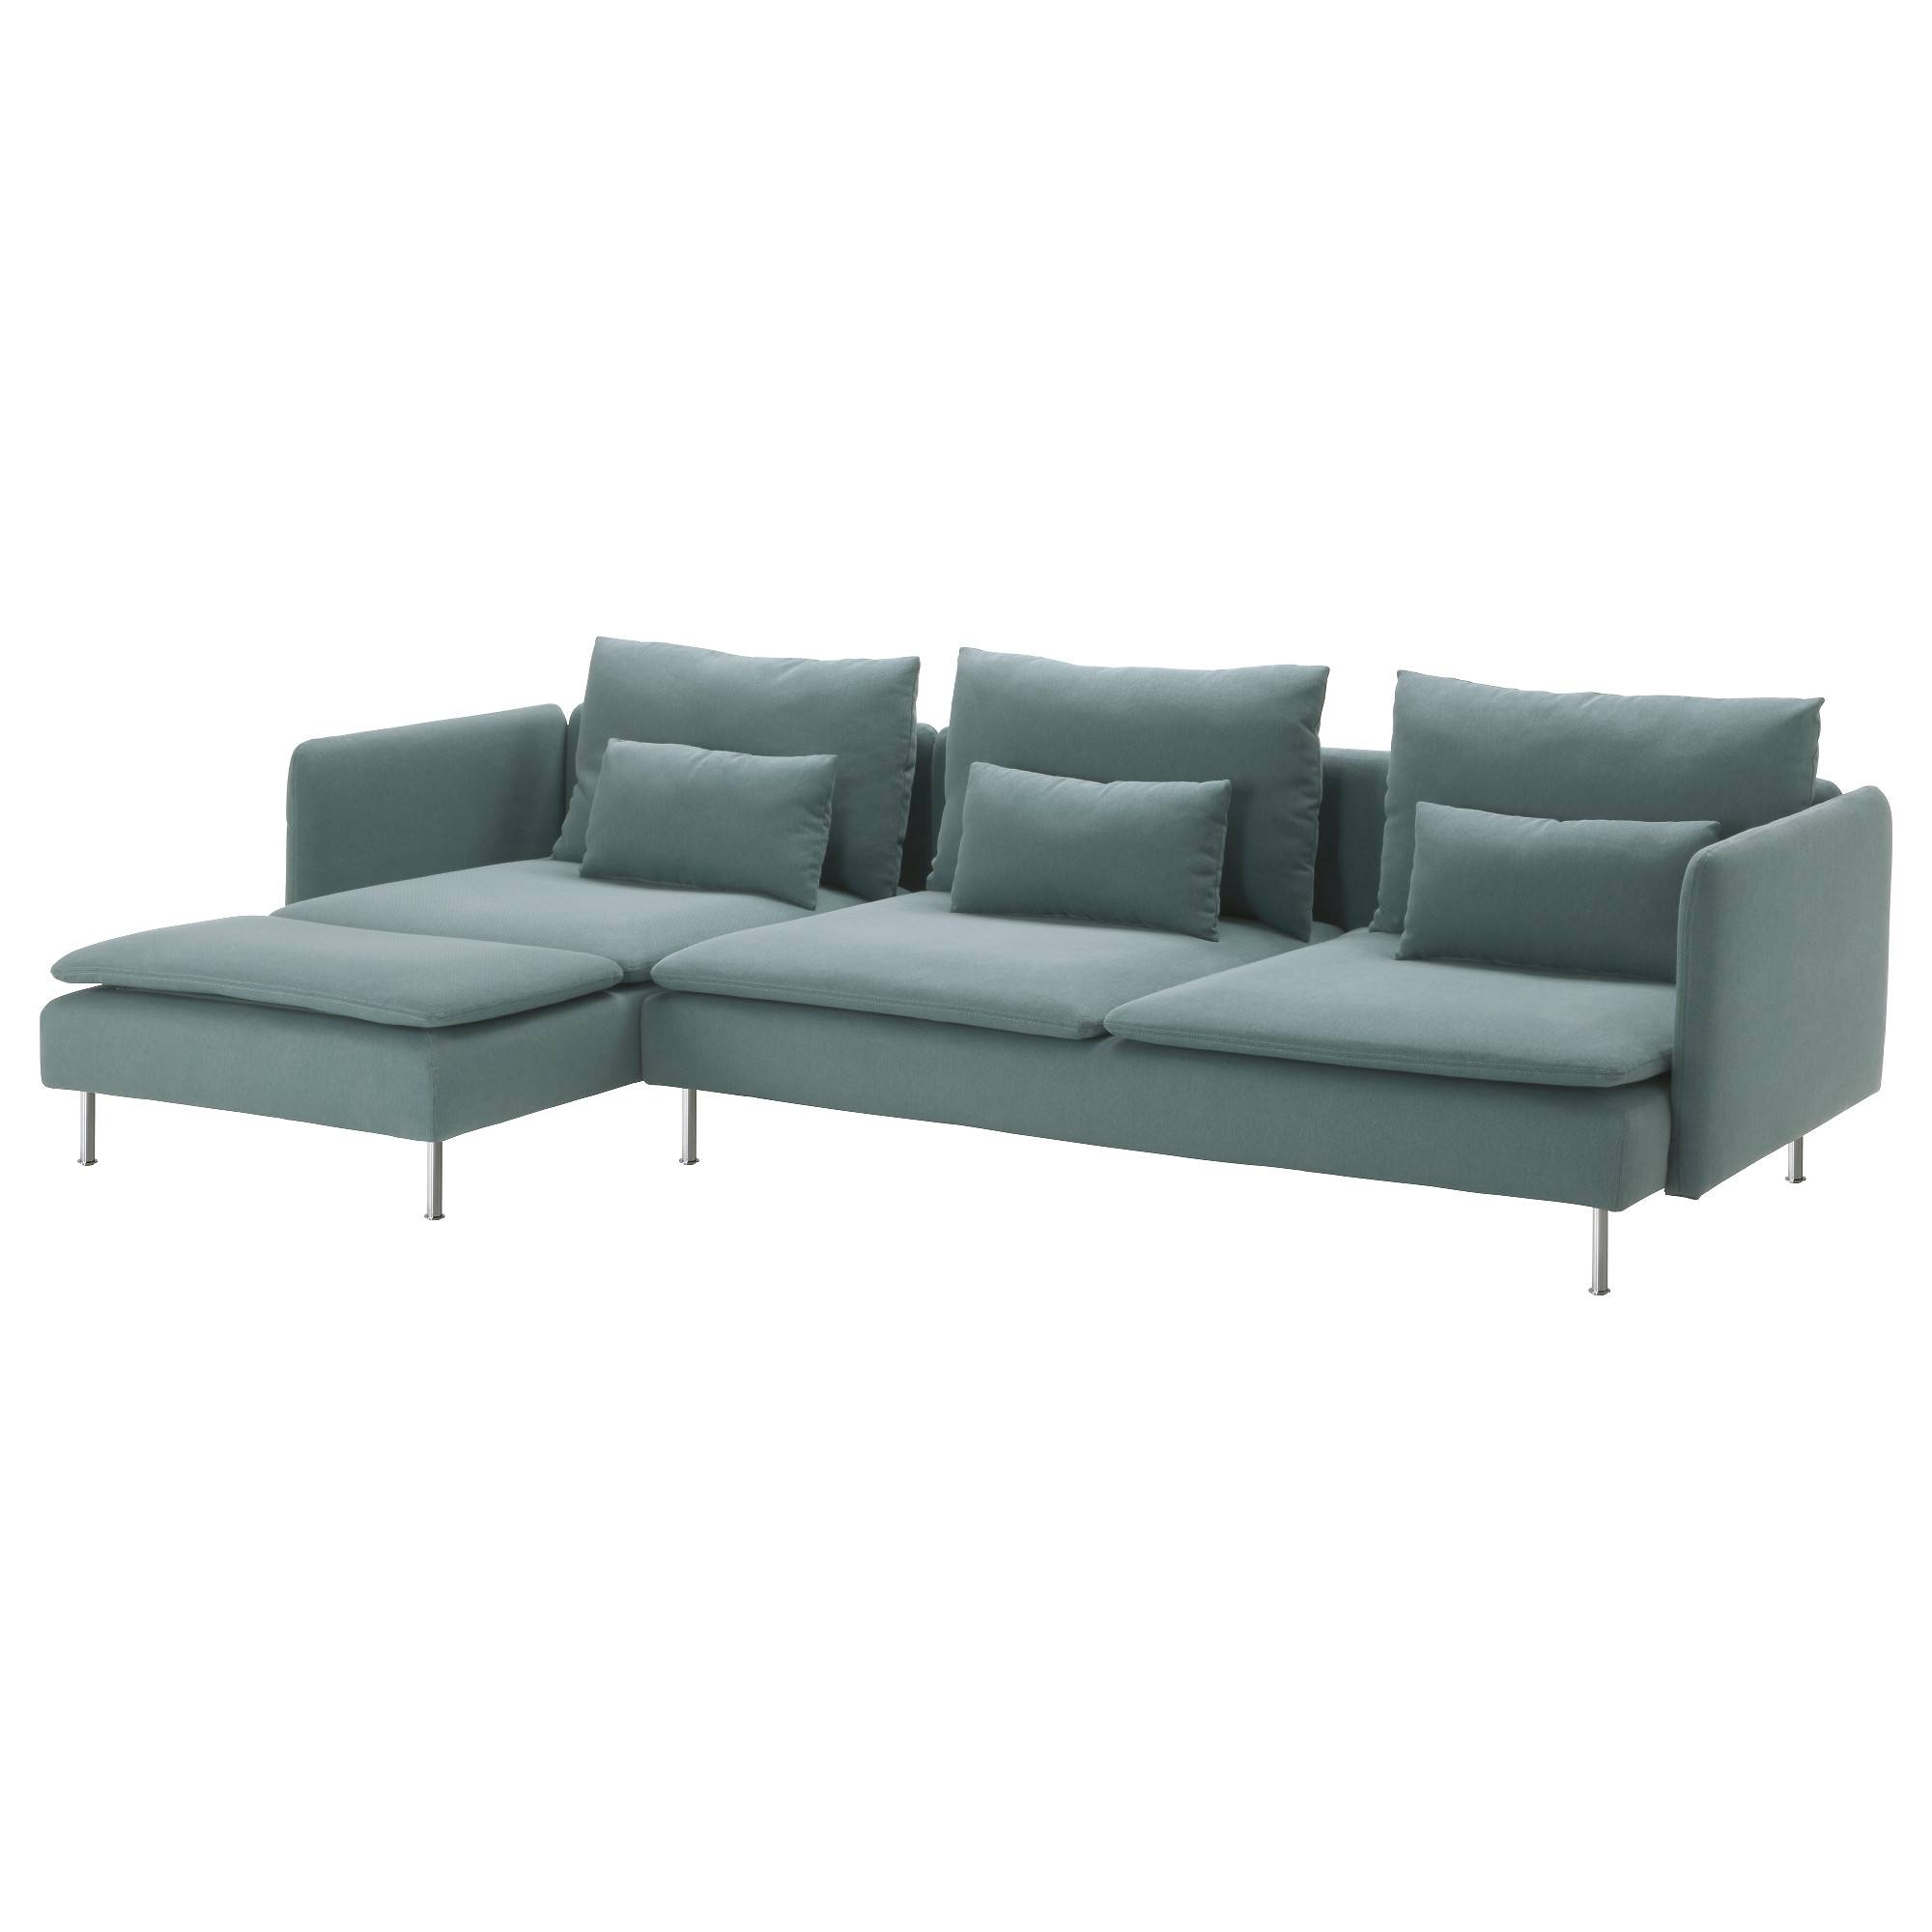 Söderhamn Three-Seat Sofa And Chaise Longue Finnsta Turquoise - Ikea inside 4 Seat Couch (Image 28 of 30)